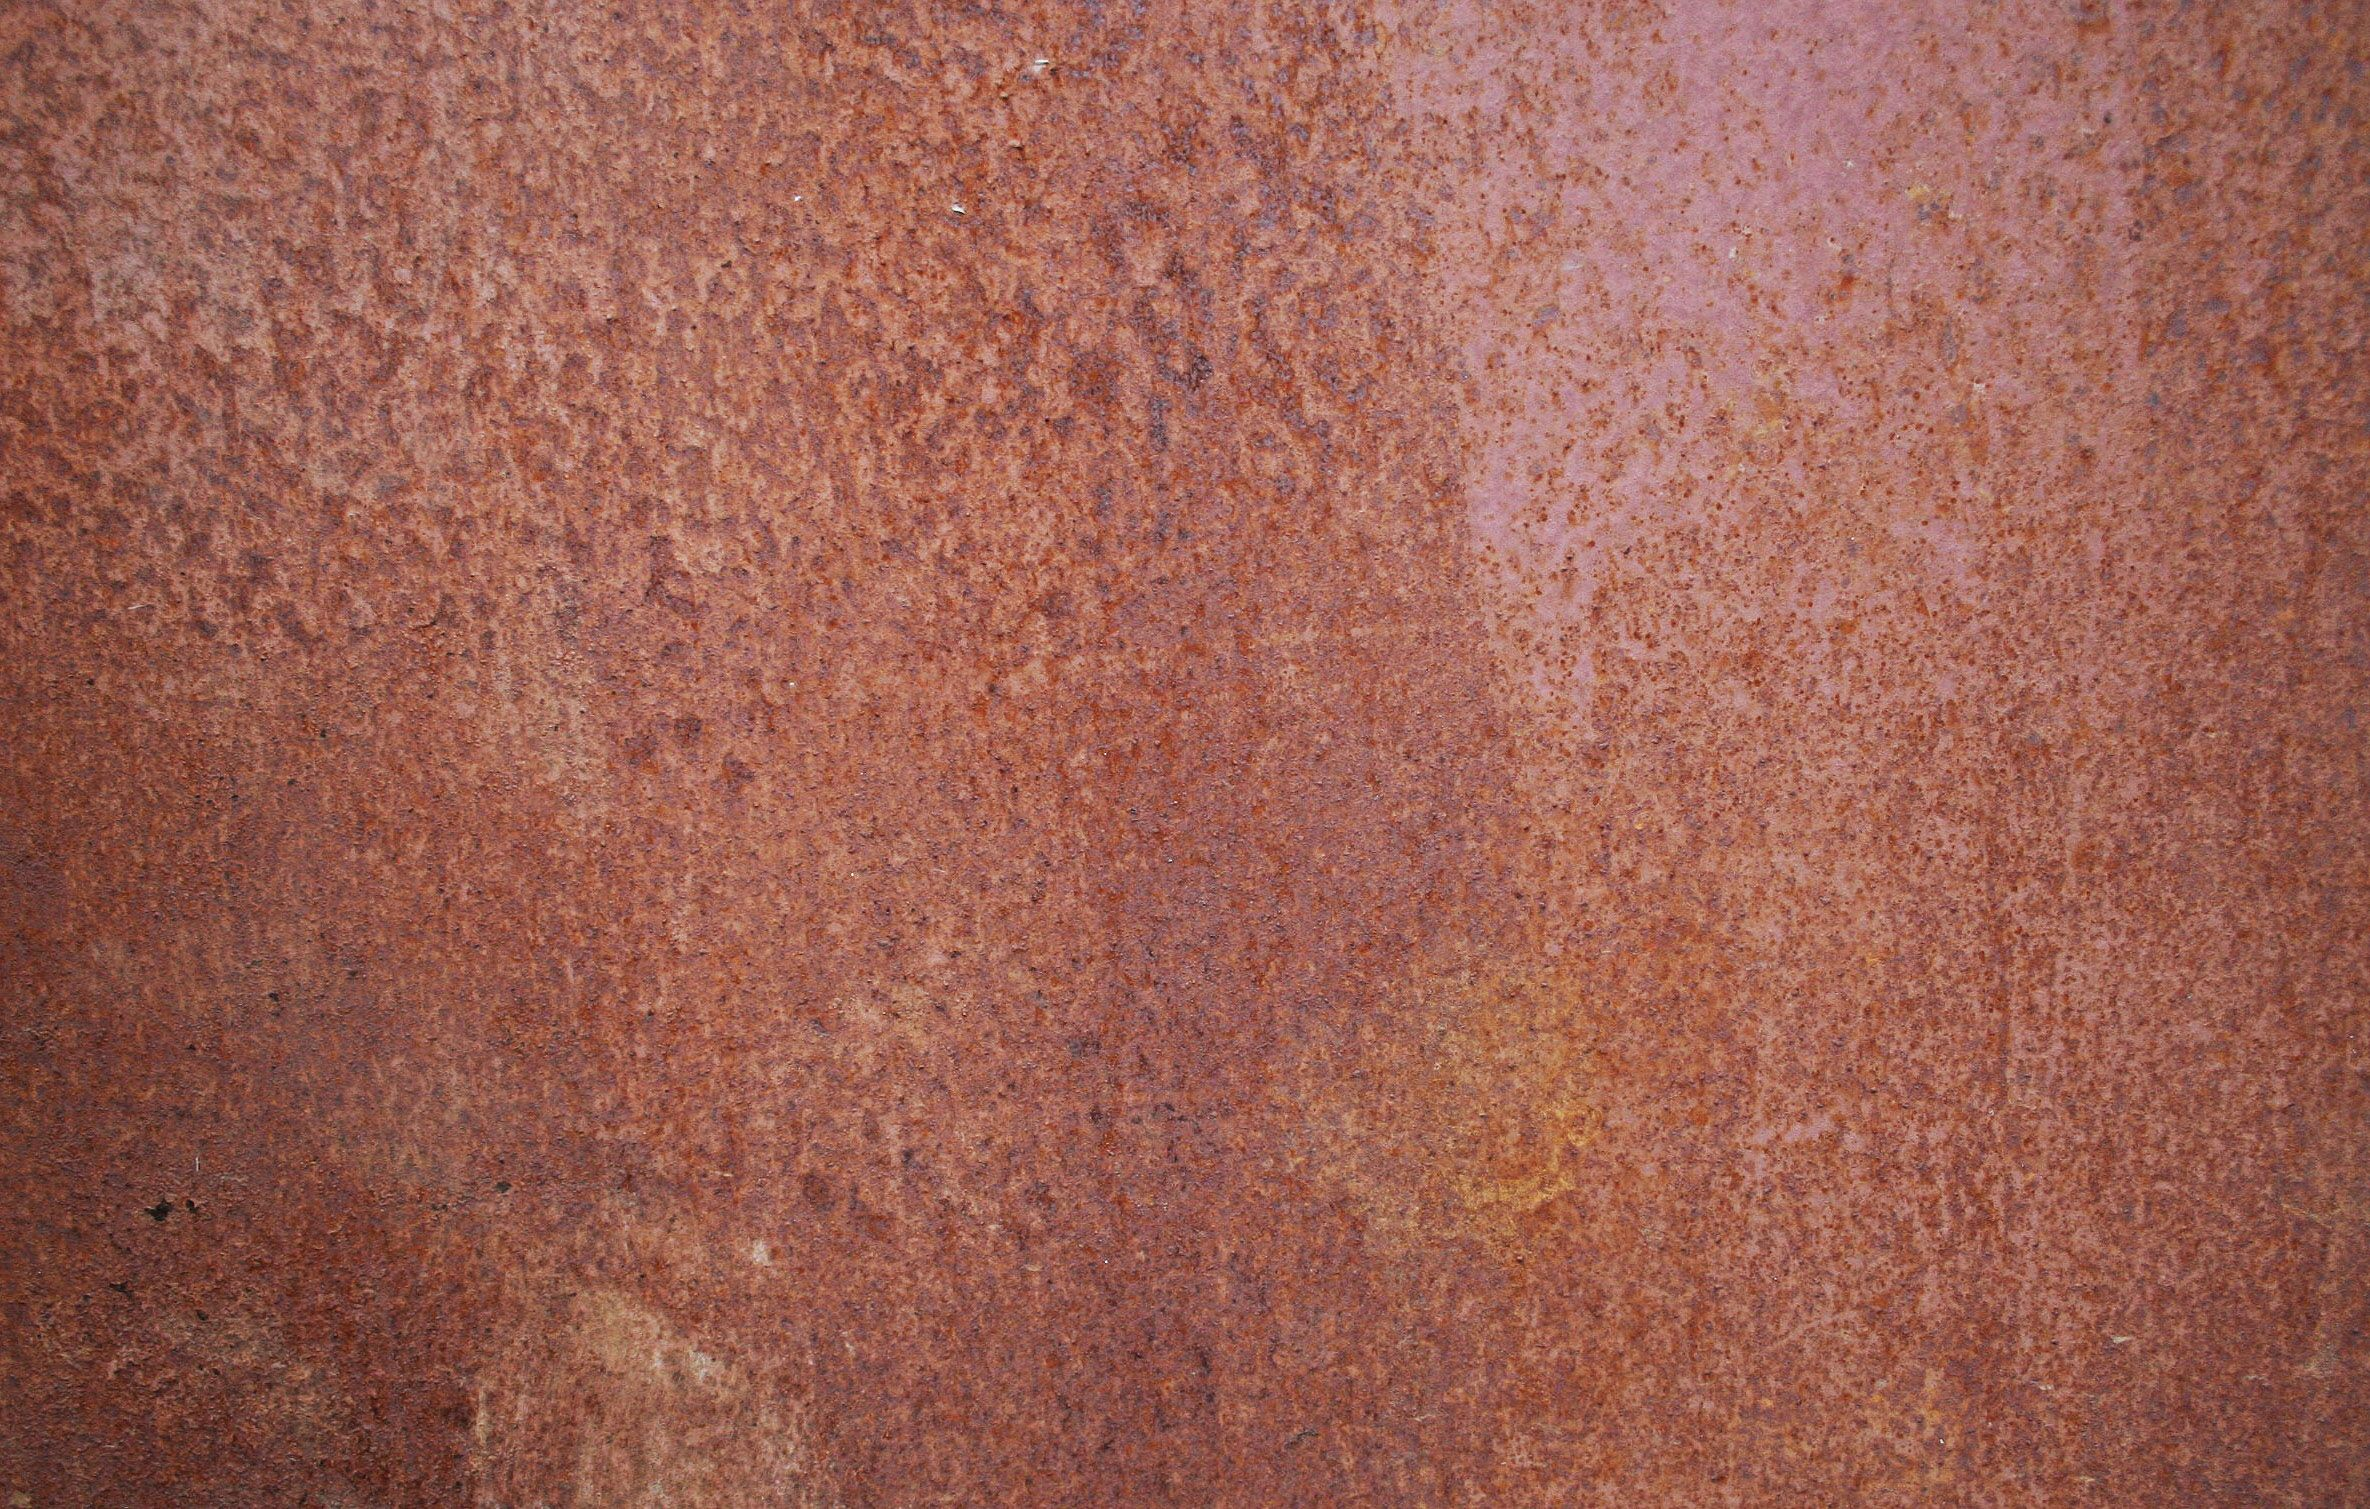 Rusted steel texture